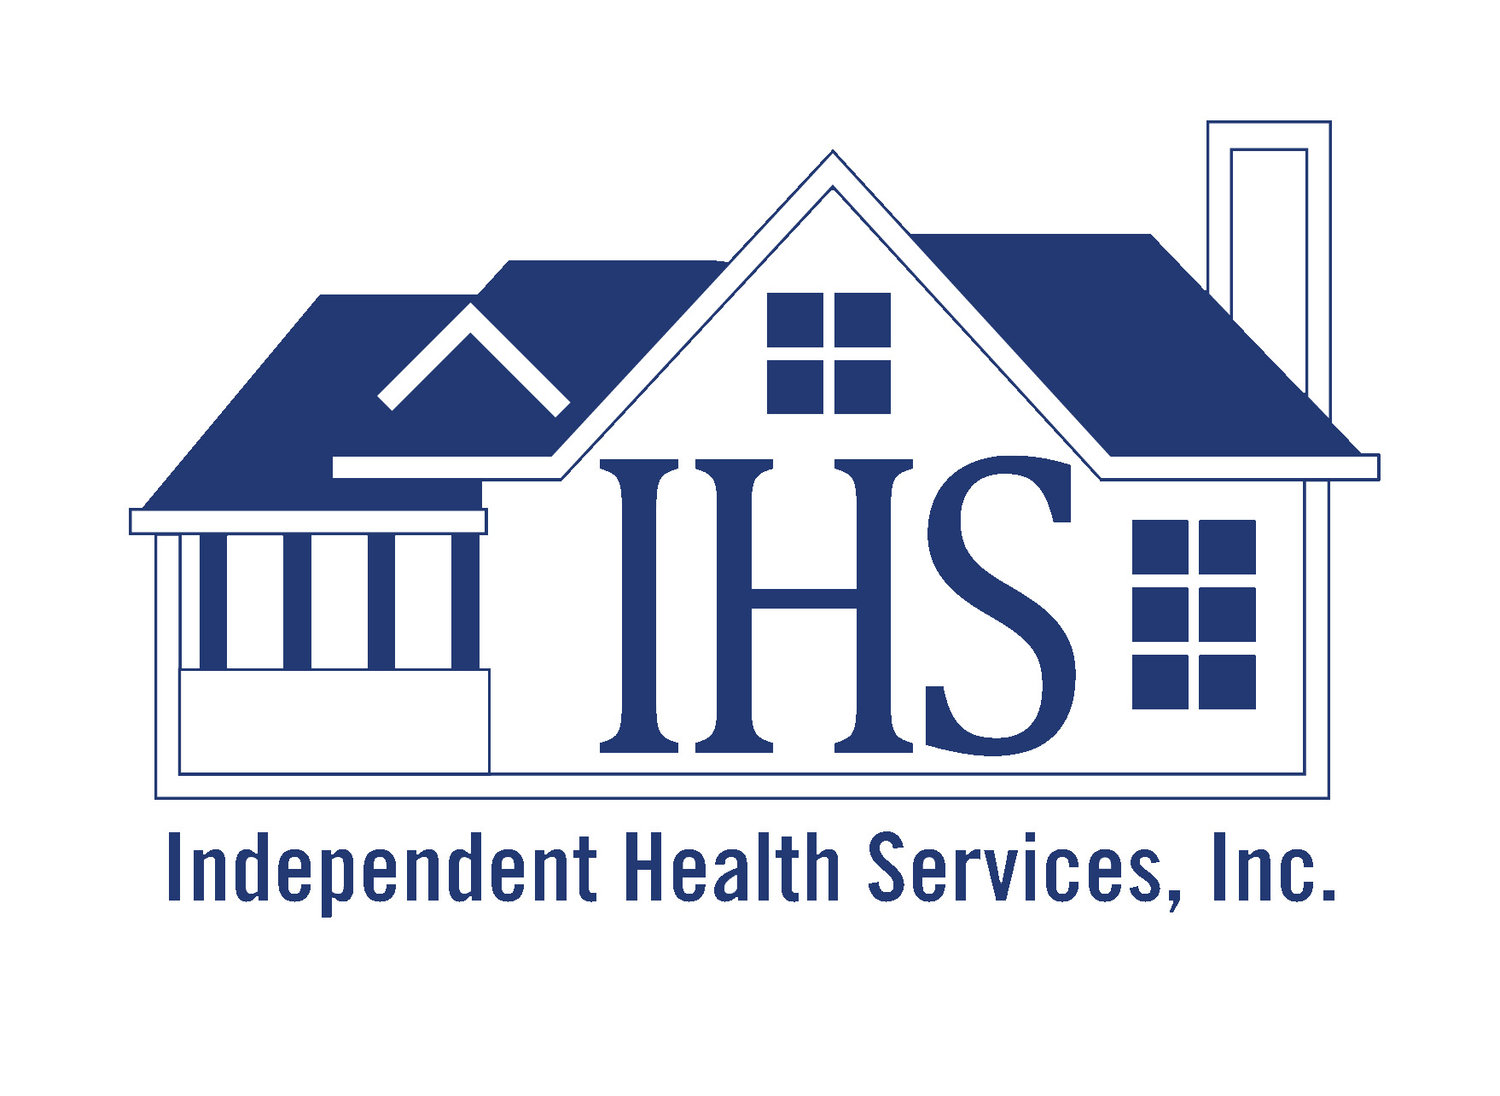 Independent Health Services